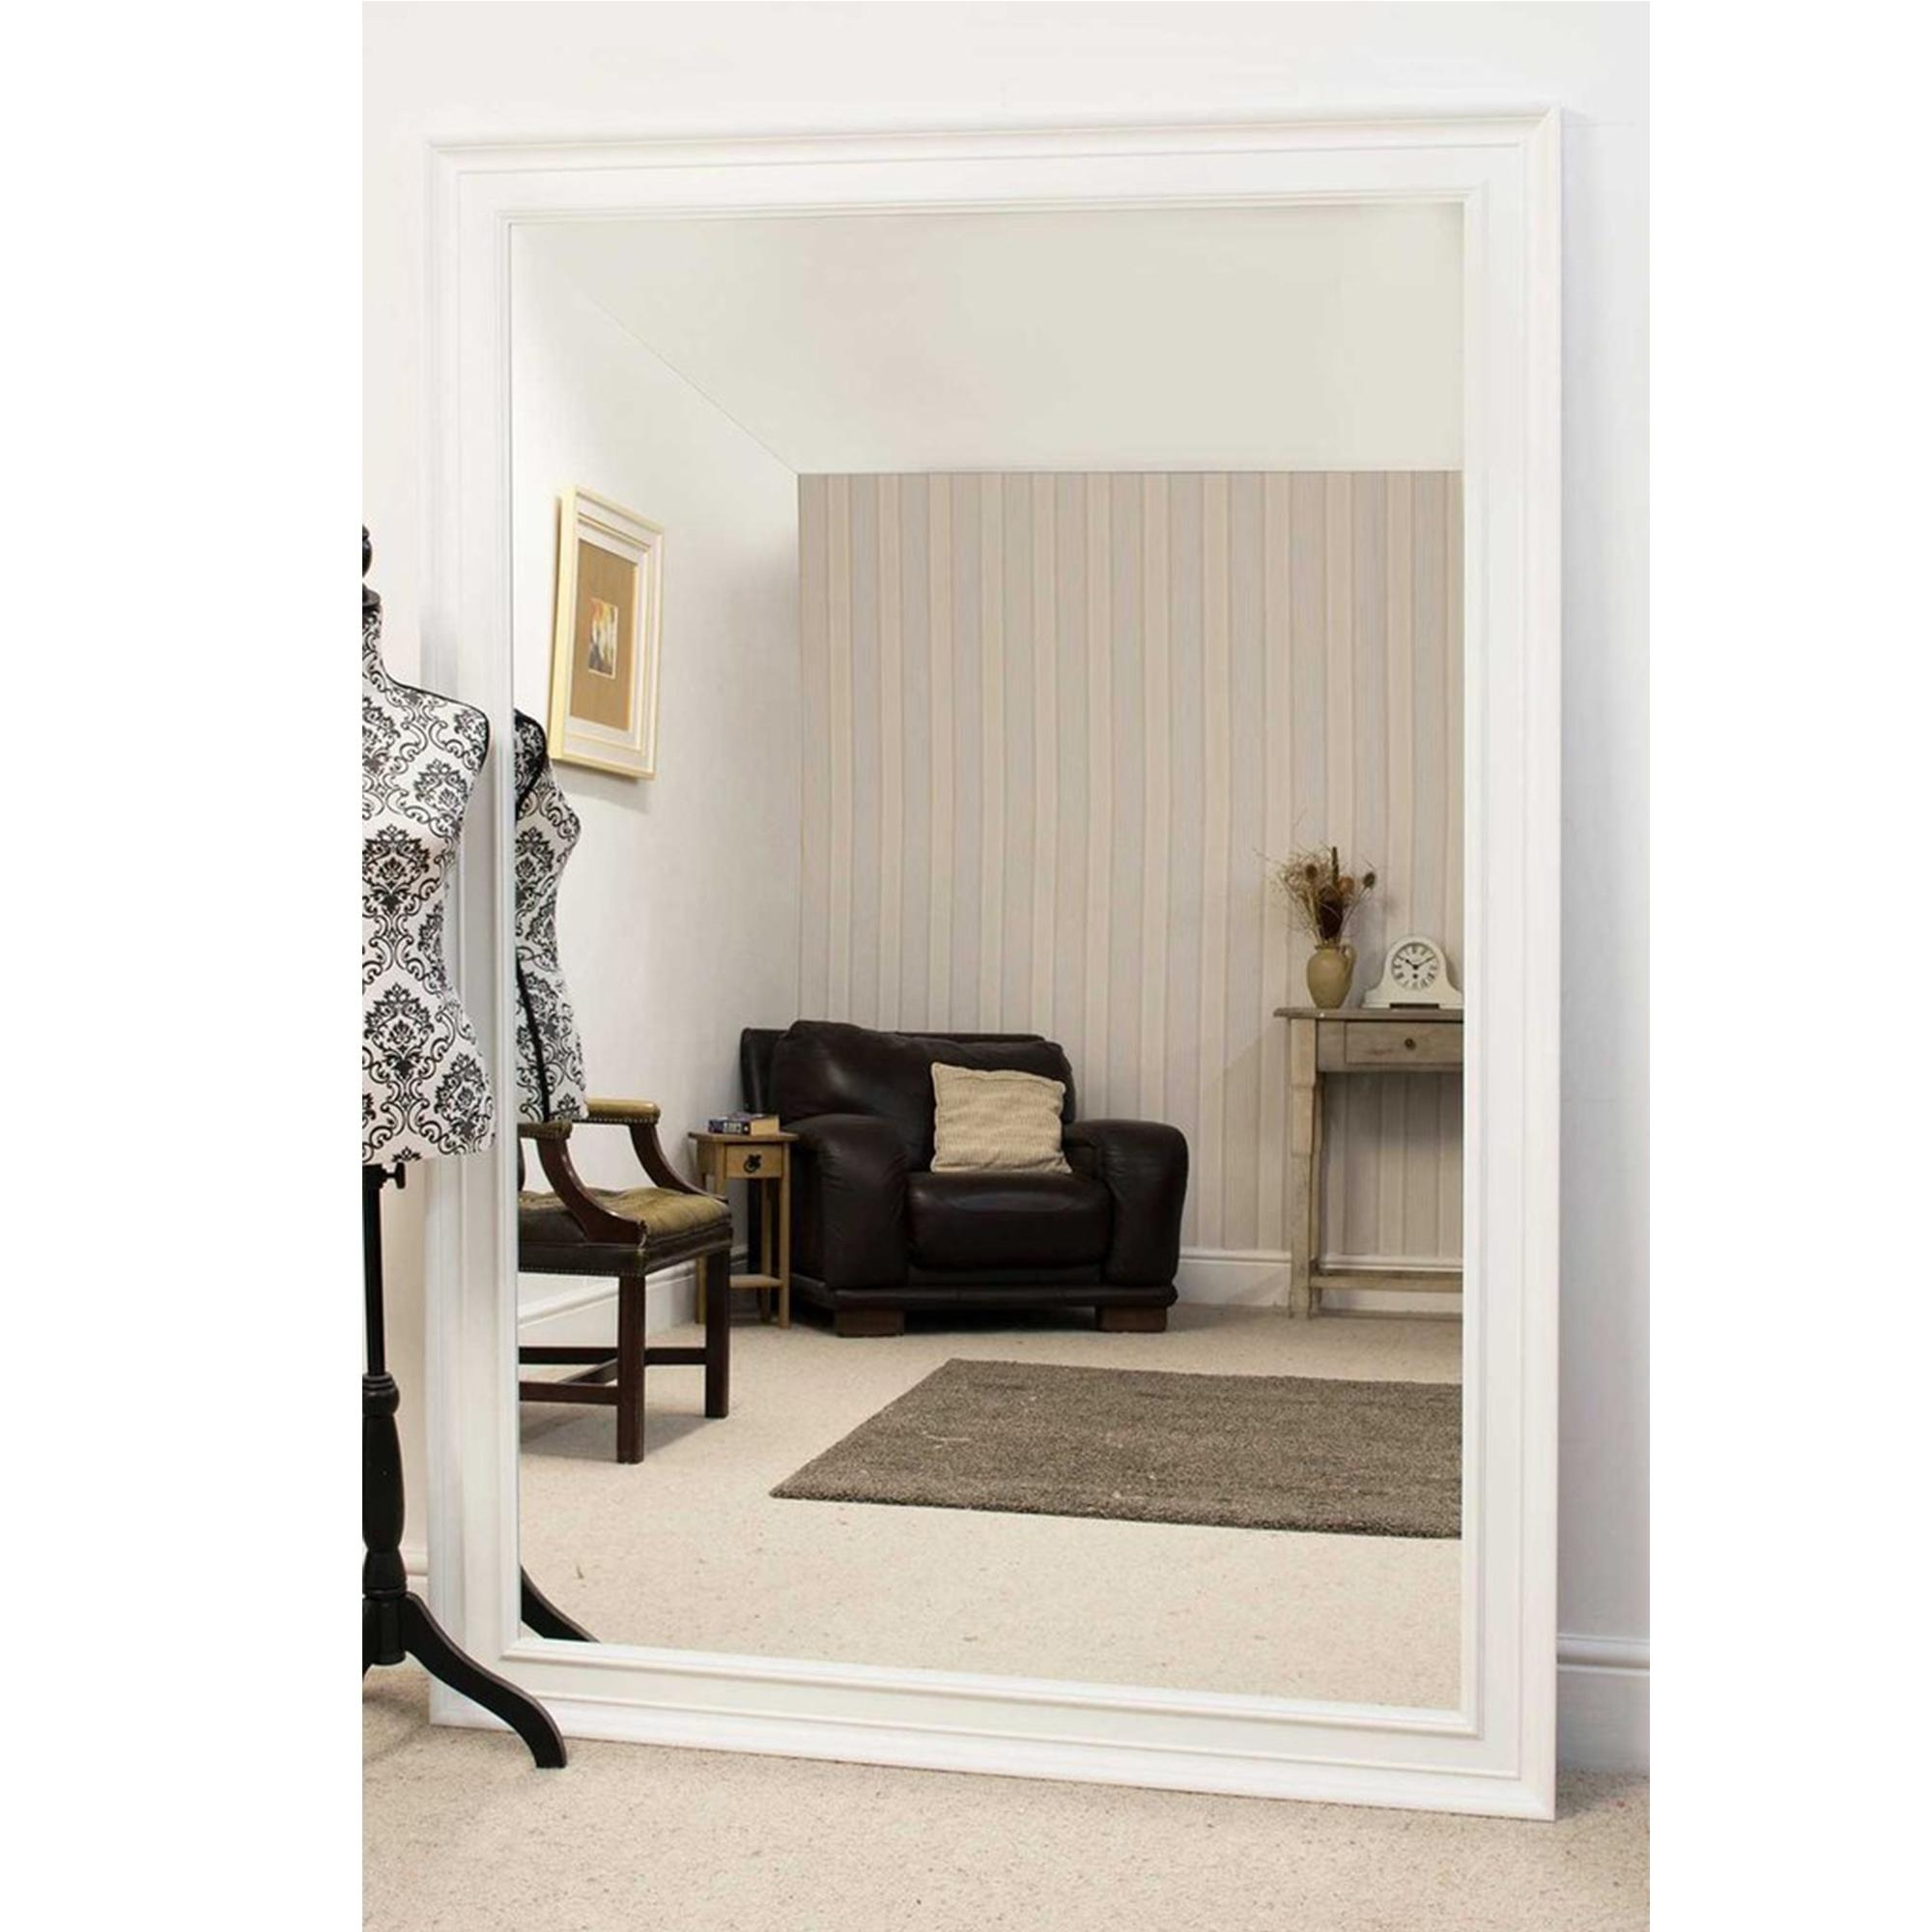 Large White Antique French Style Mirror | Ornate White Mirrors With Regard To French Style Wall Mirror (Image 19 of 20)